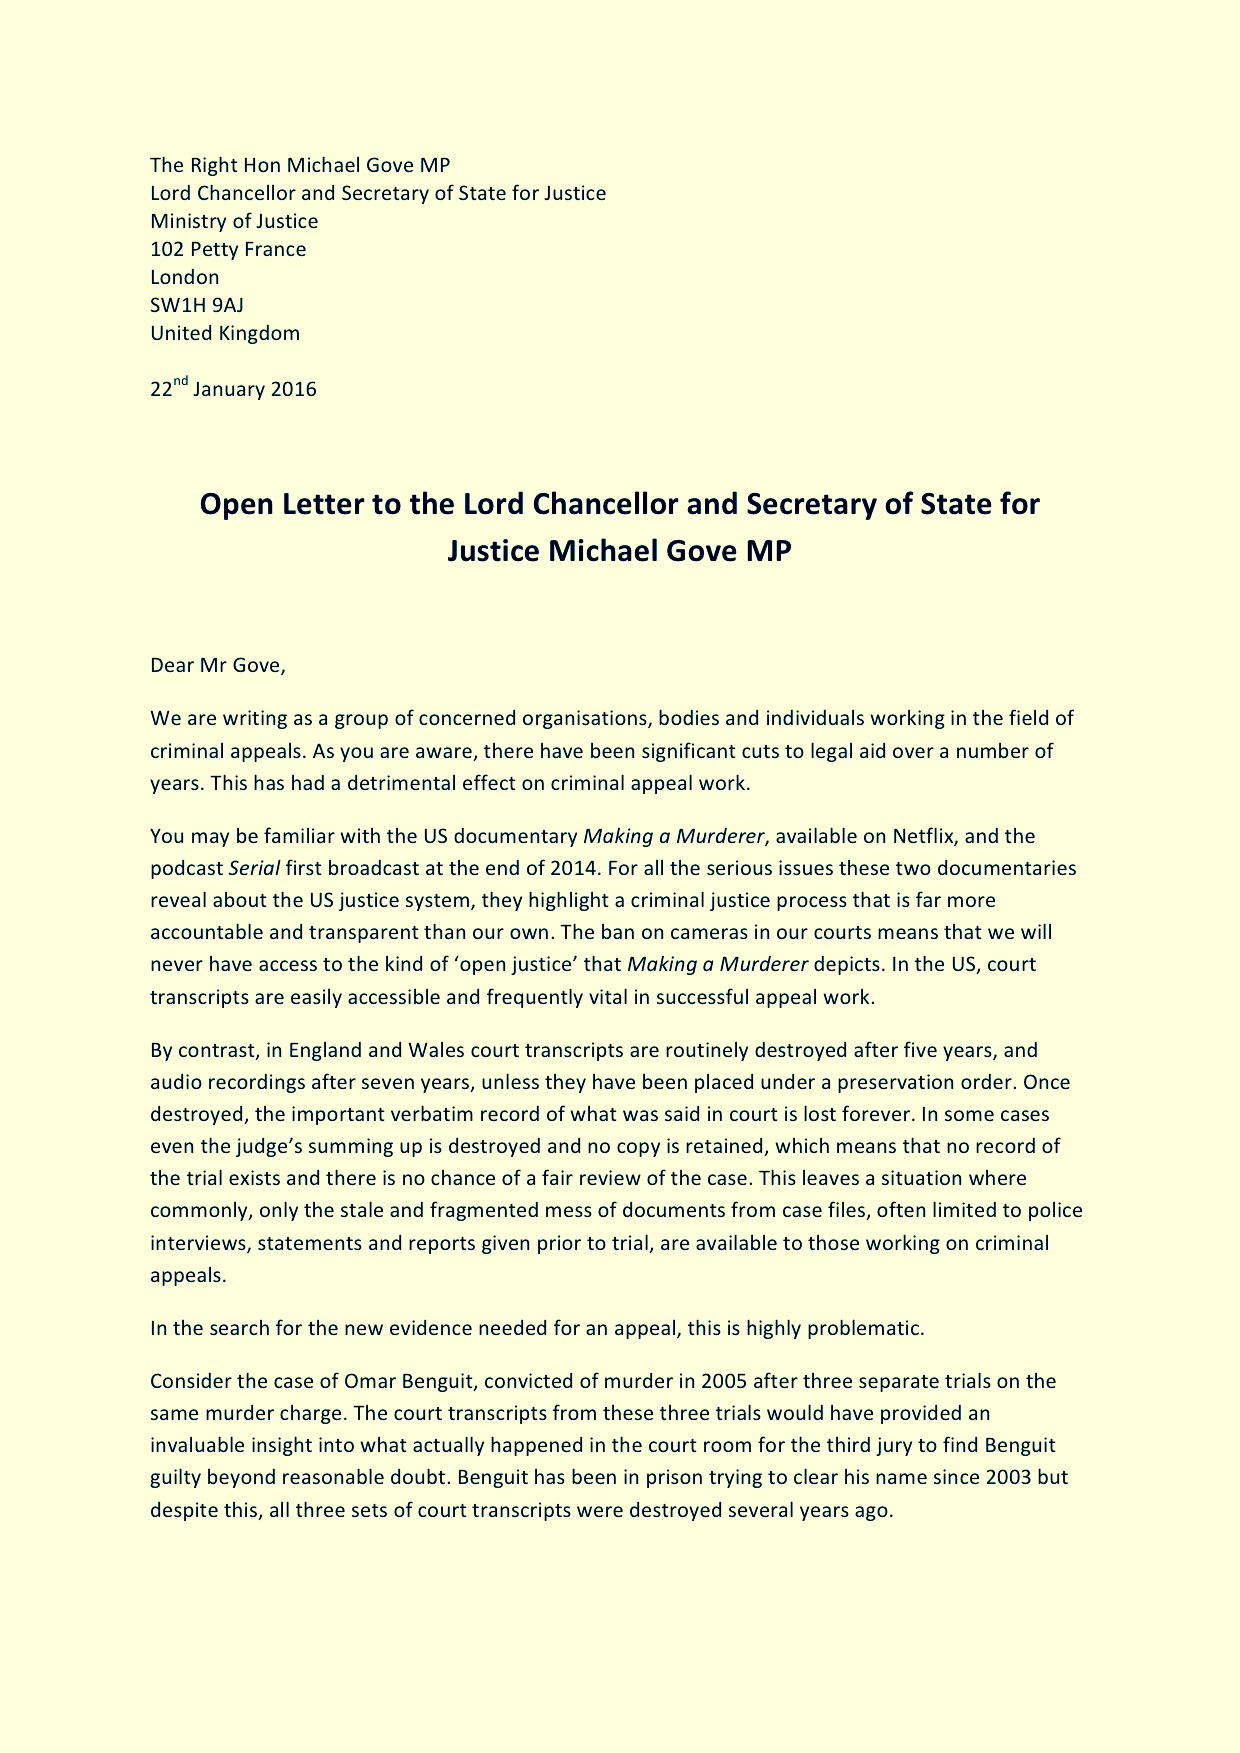 Open Letter to Michael Gove-3 (1)